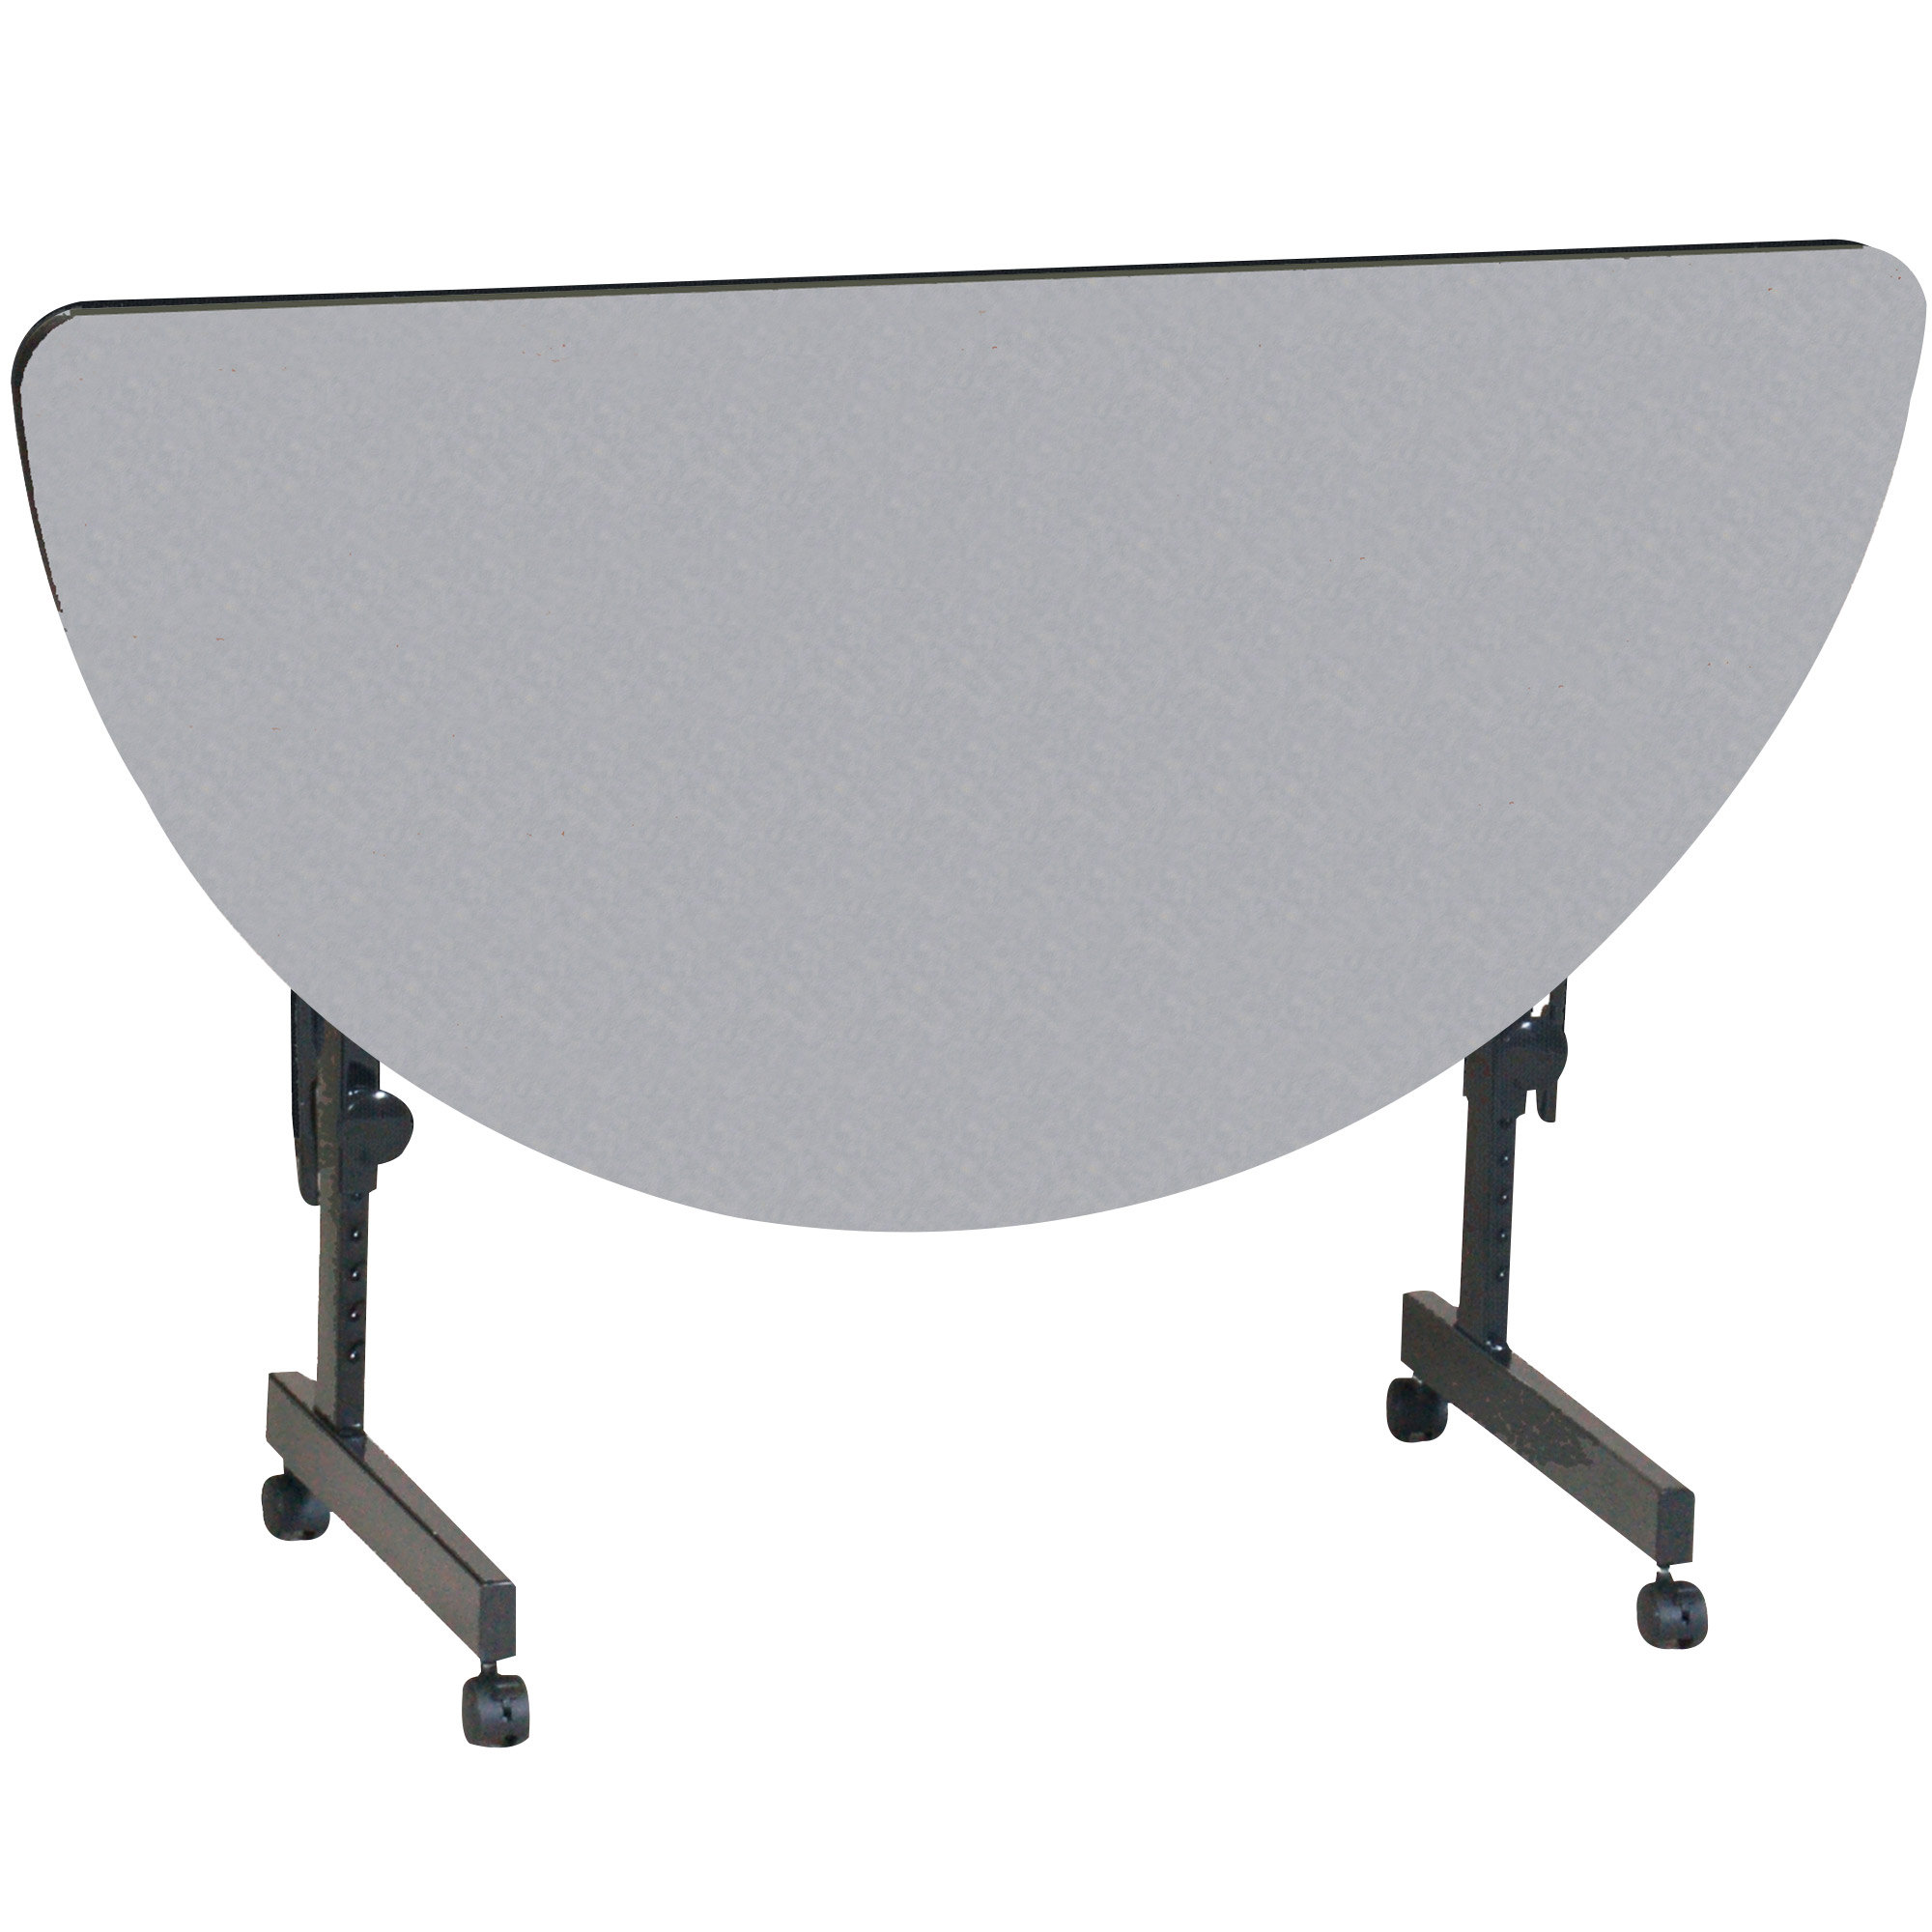 Correll Ft2448hr 15 High Pressure Laminate Half Round Flip Top Table Gray Granite 24 X 48 Correll Tables For Less